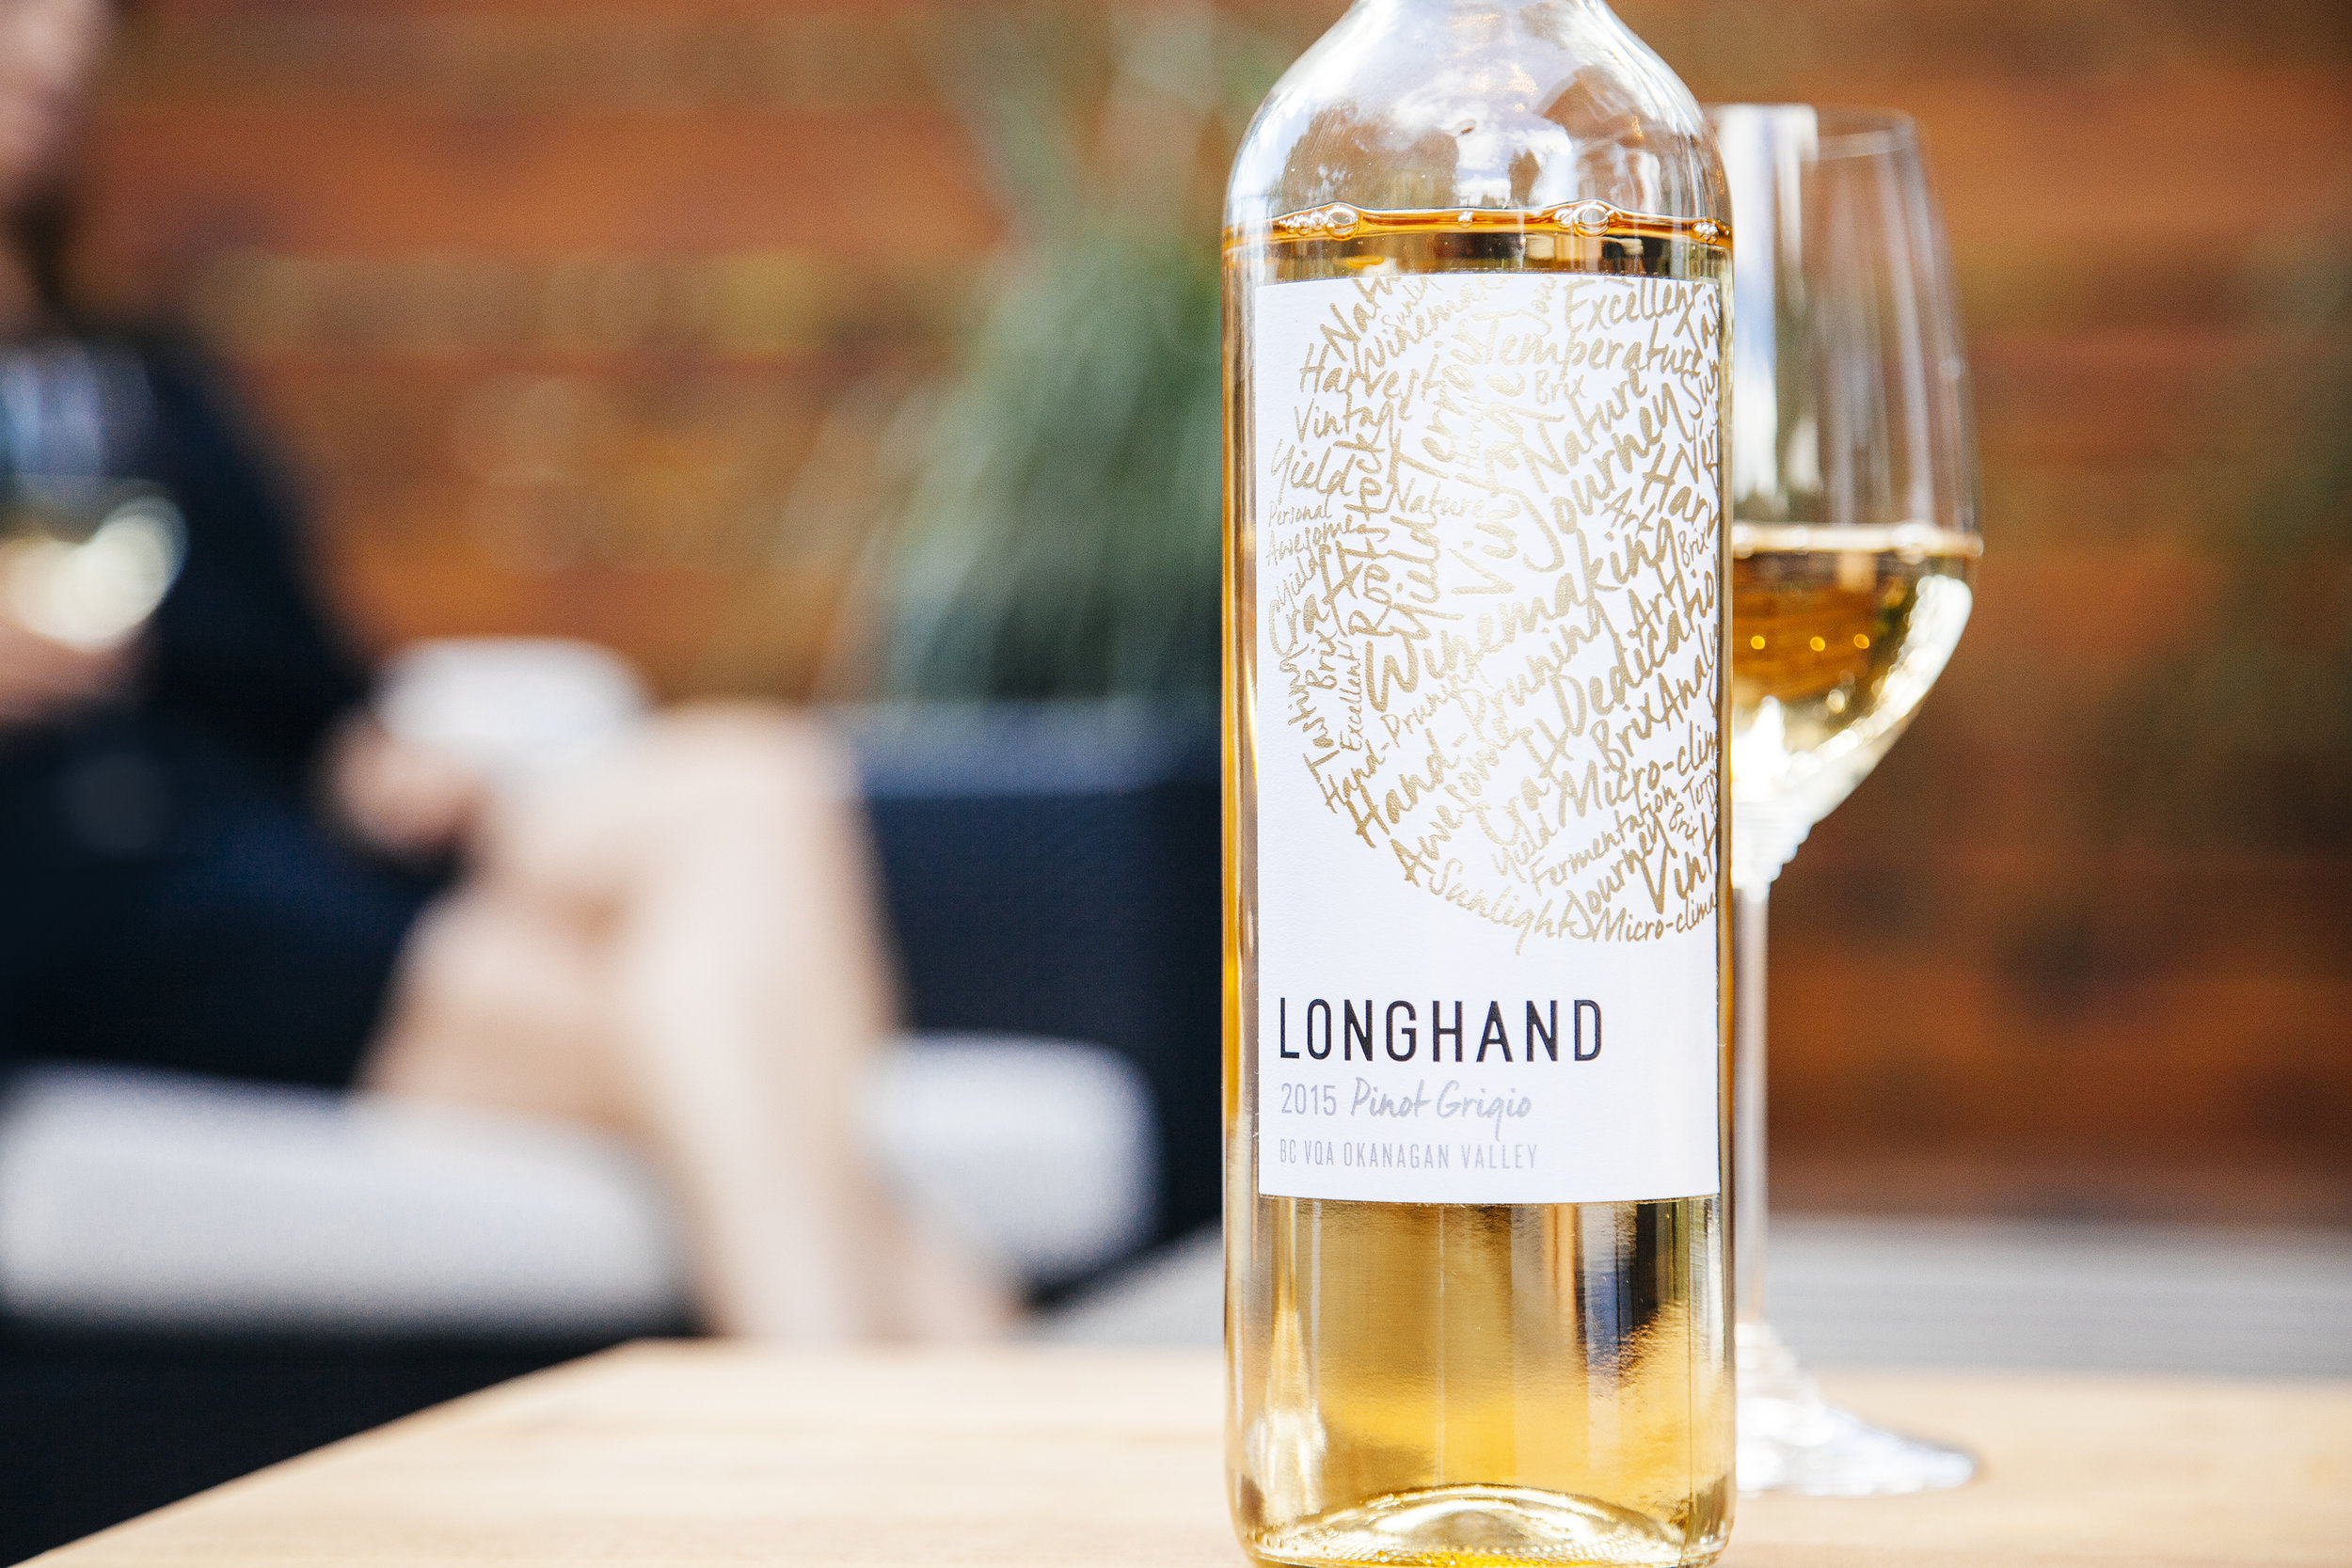 Lifestyle product imagery for Longhand case study